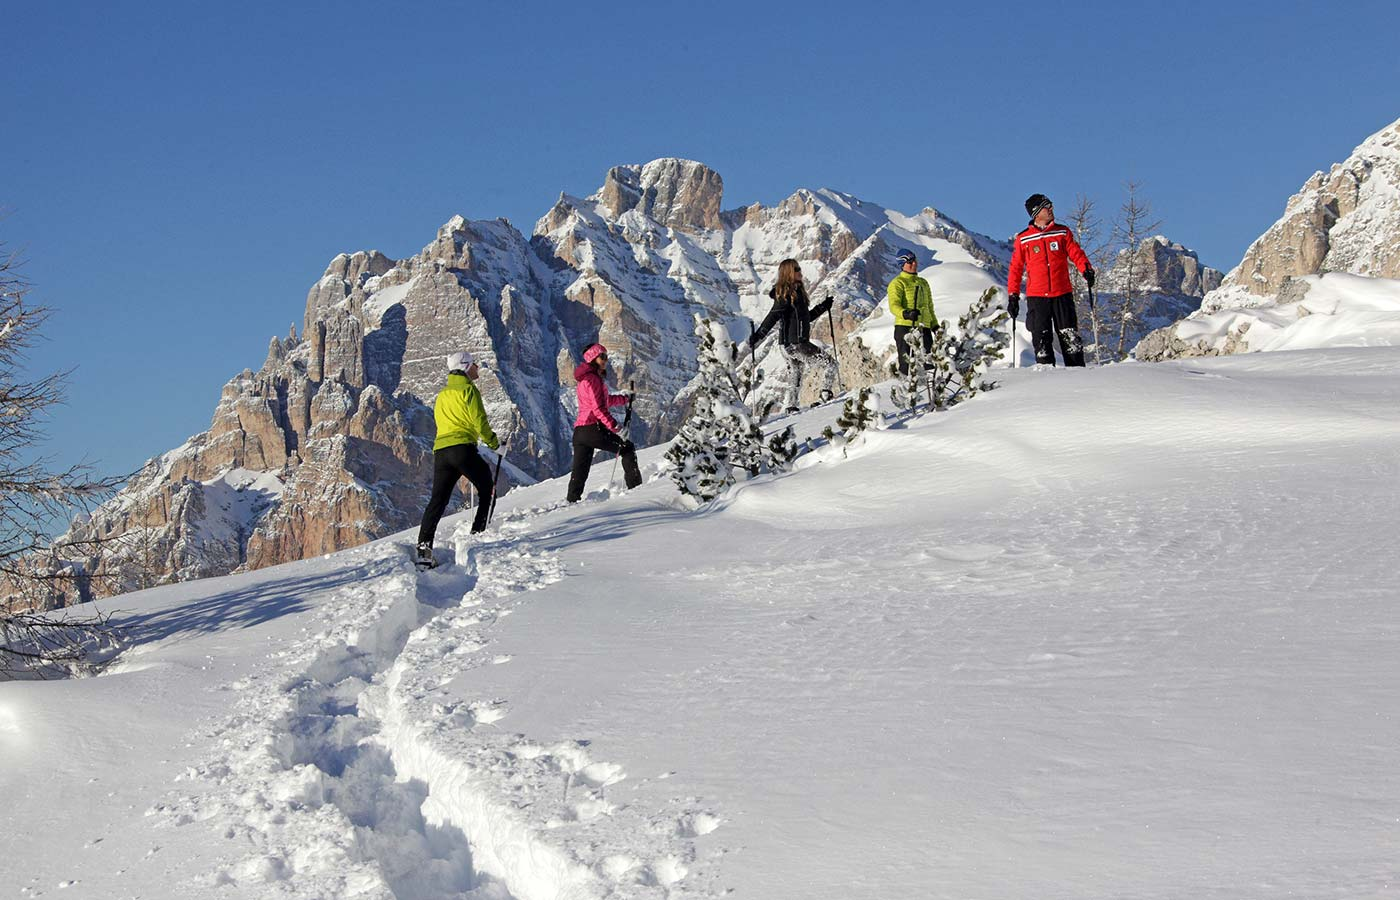 Snowshoe hiking with Dolomites at the back